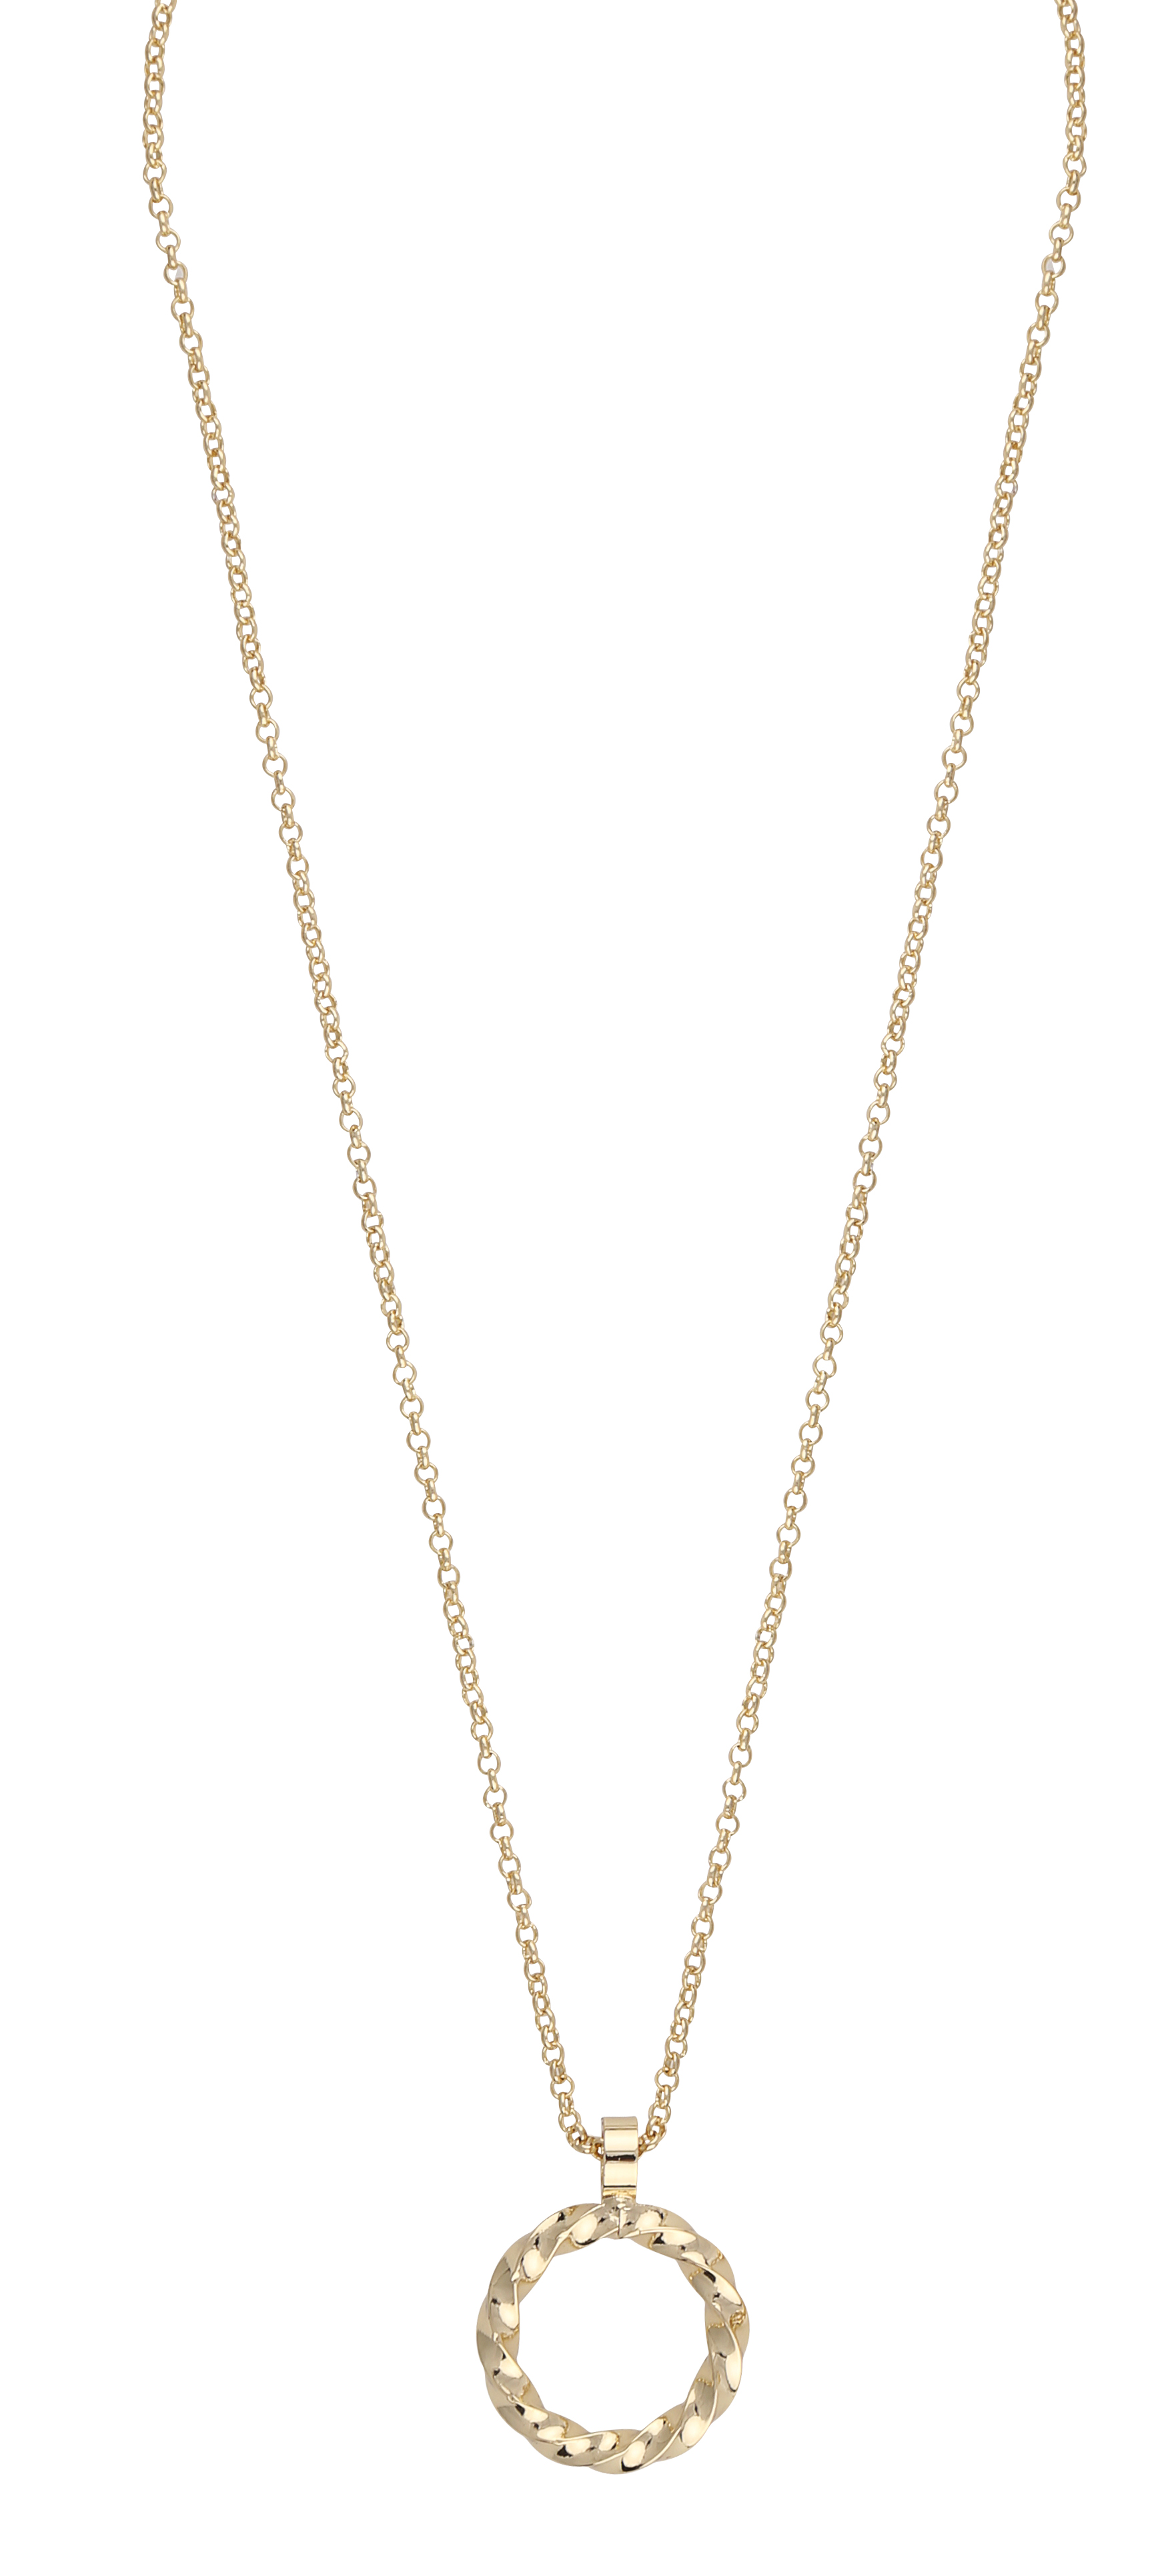 Turn Pendant Necklace Gold